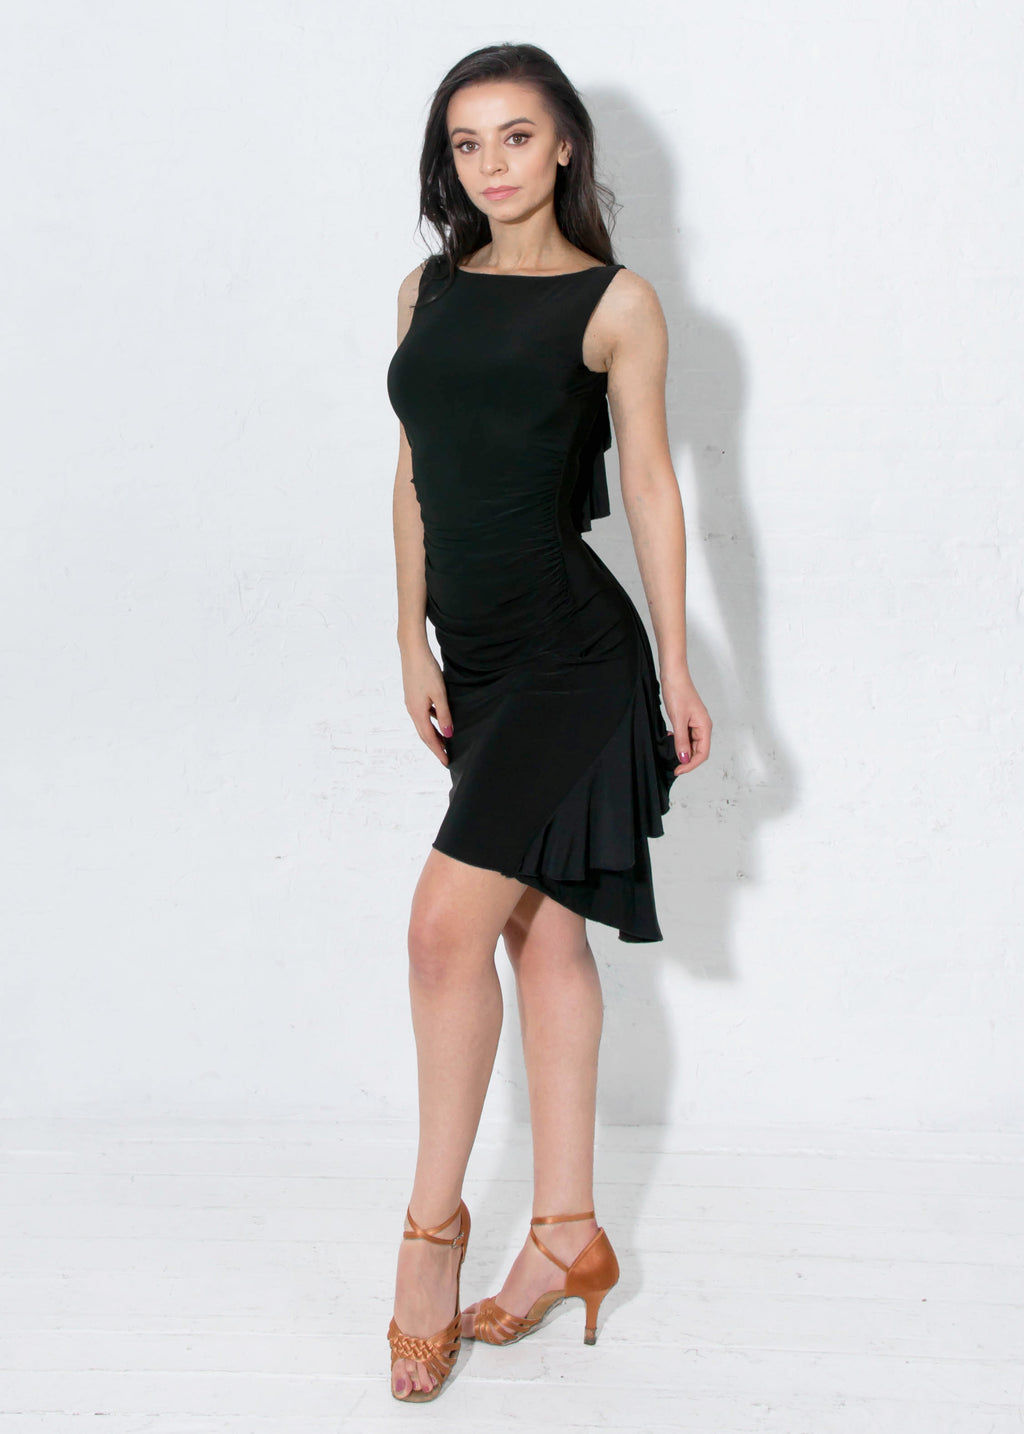 Boat neck neckline and side seam ruching gives this latin ballroom dance dress a super sleek silhouette. Includes a shelf bra. Knee-length for most heights (5'3-5'5).